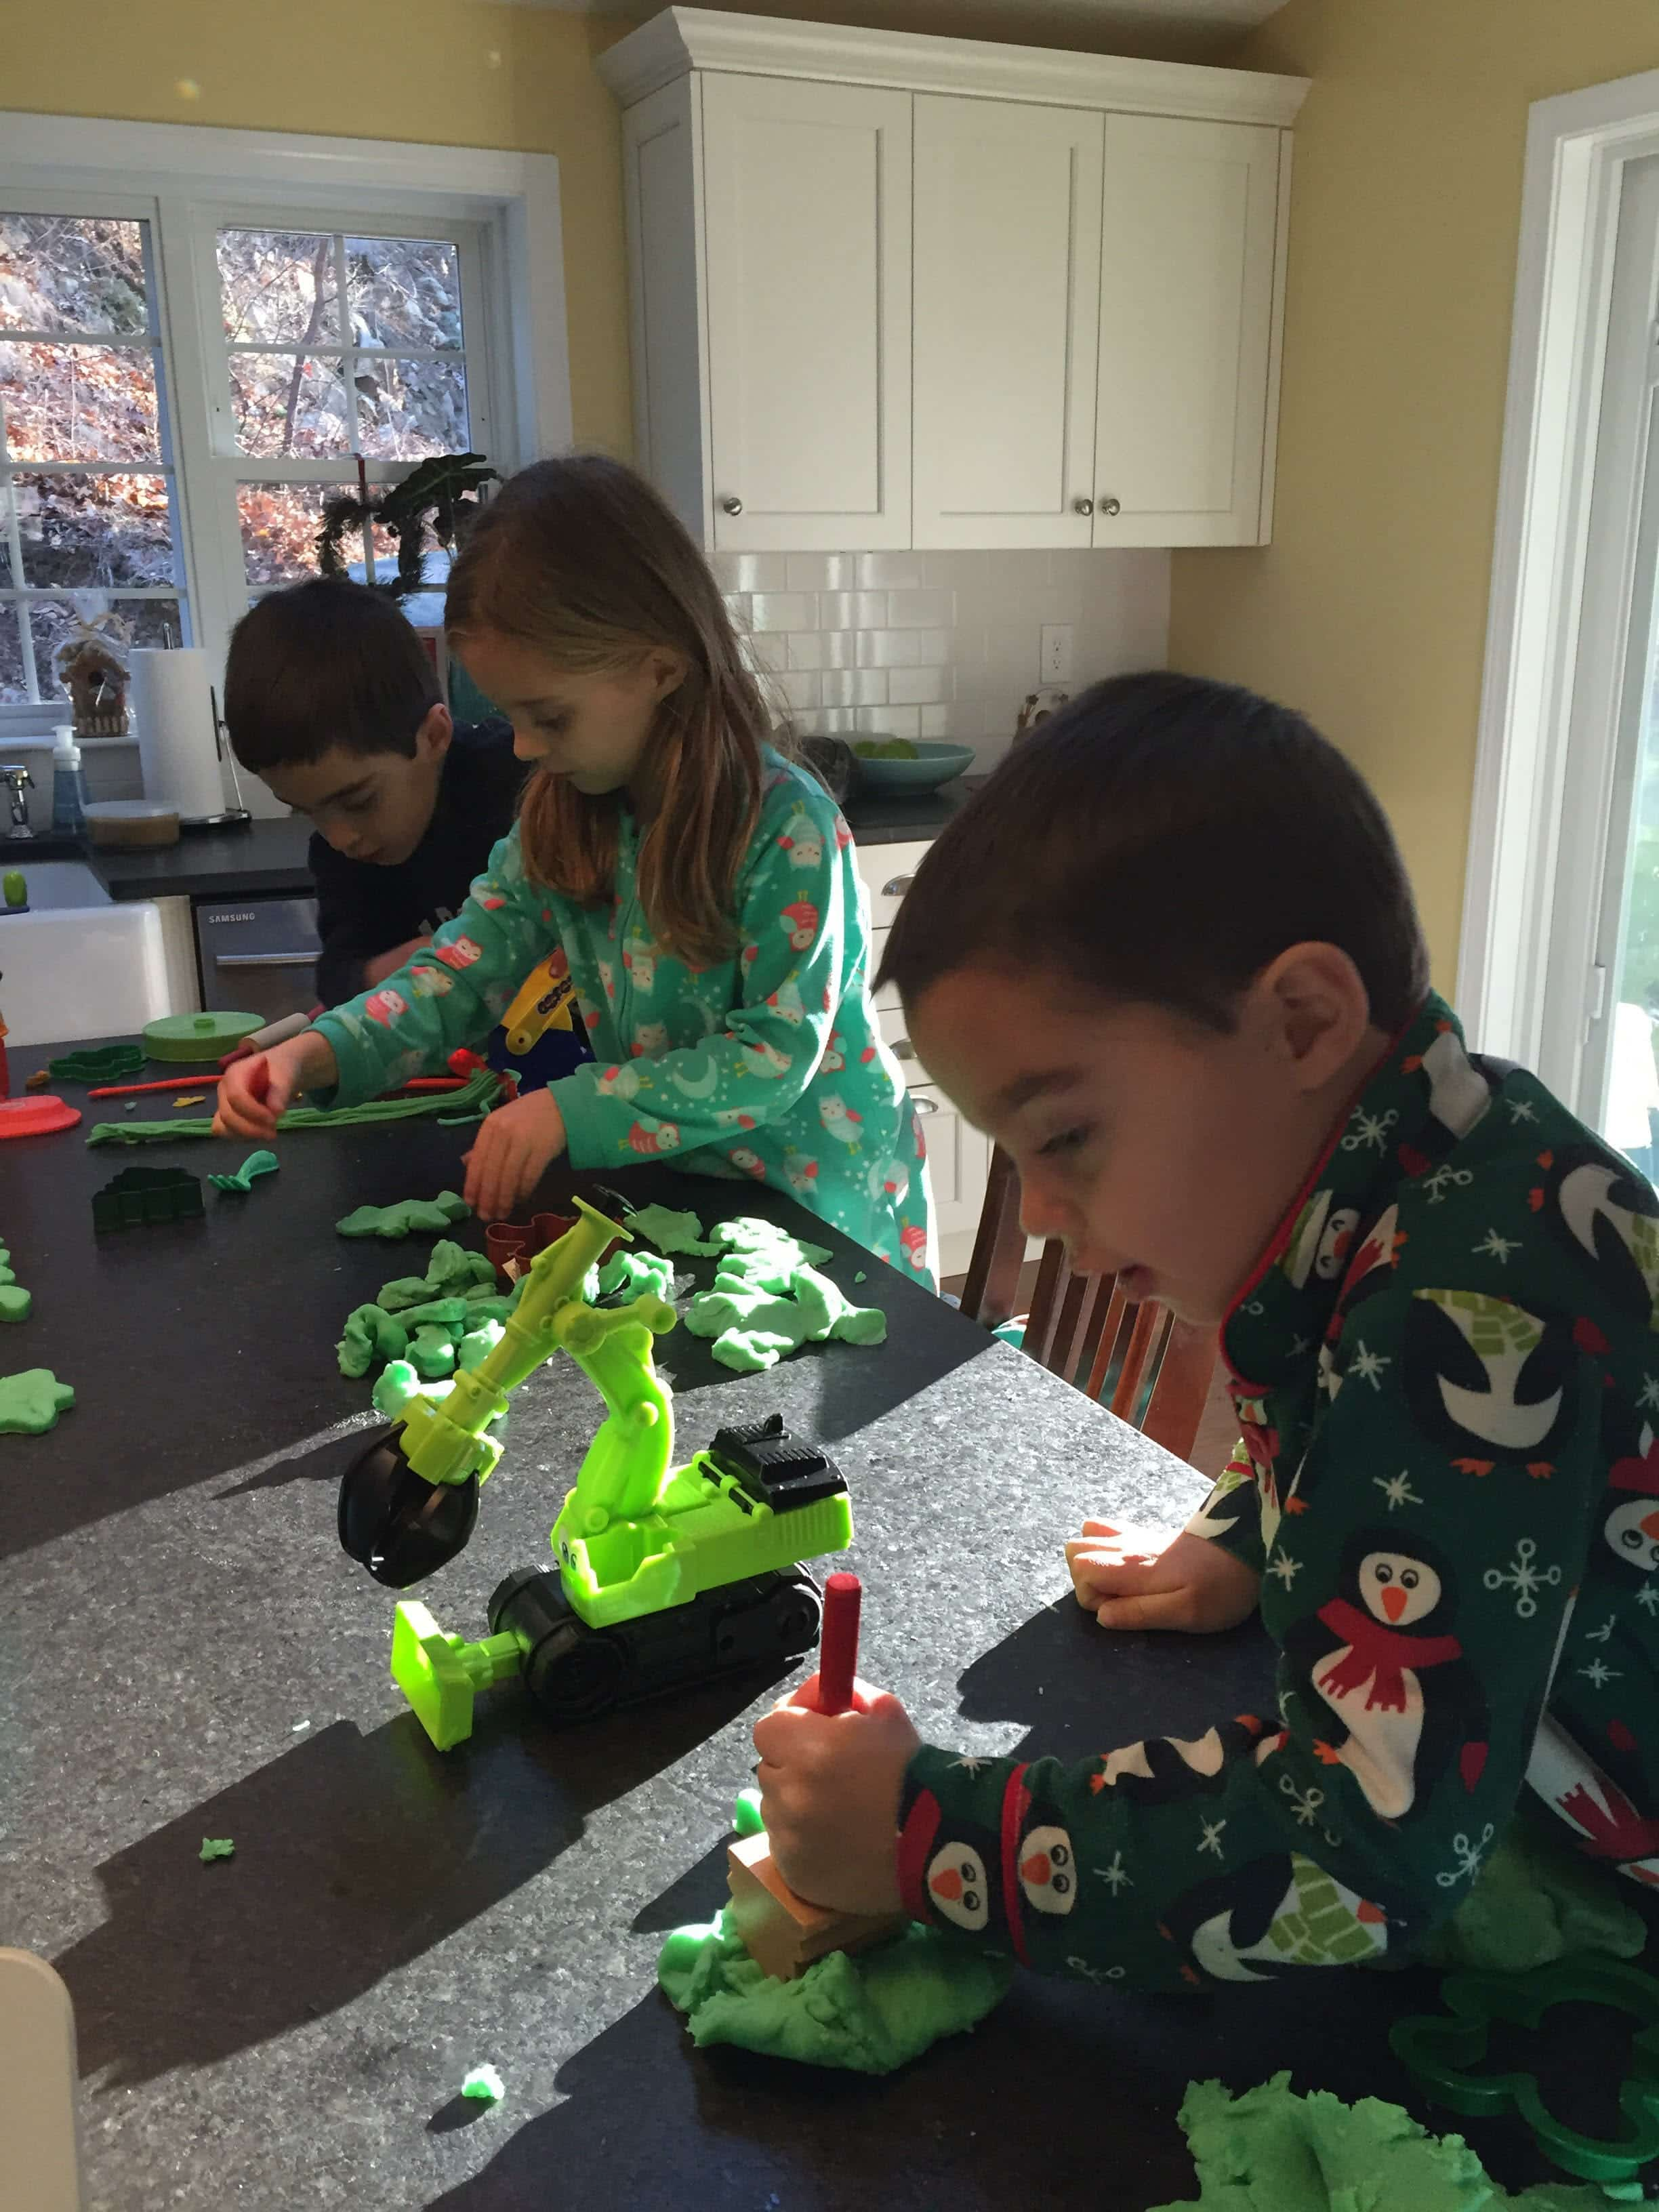 How To Make Your Own Holiday Playdough Grinchy Dough My Little Poppies